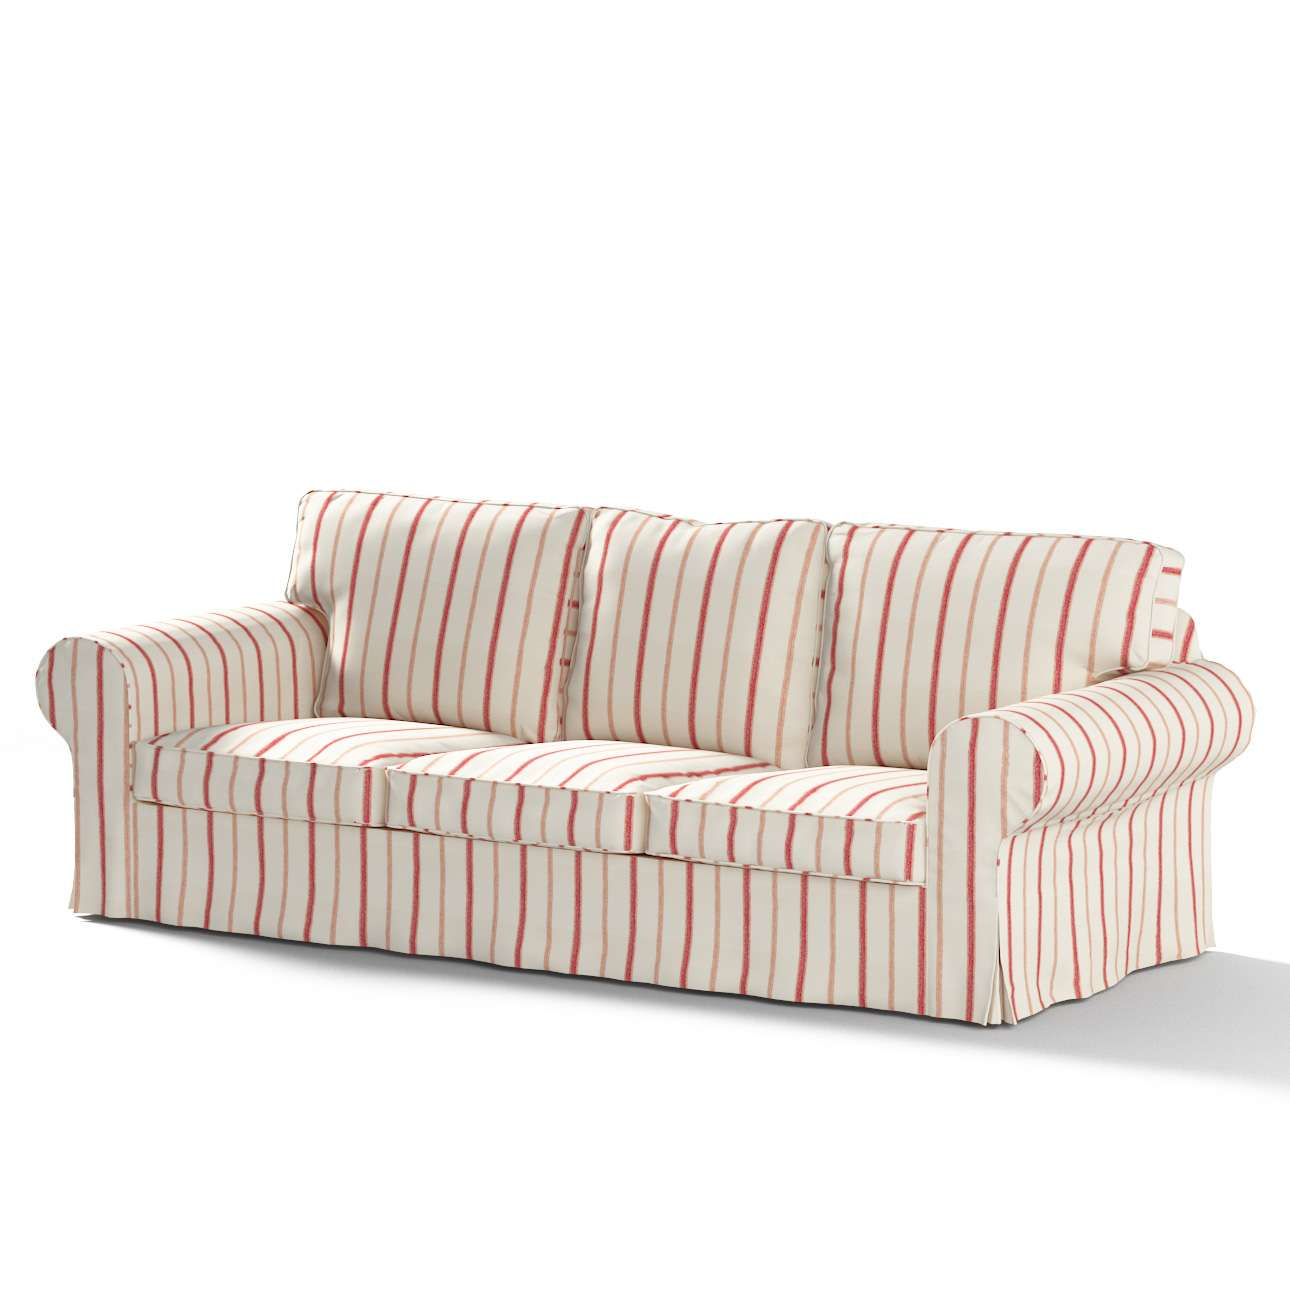 Ektorp 3 seater sofa bed cover (for model on sale in Ikea 2004 2012)